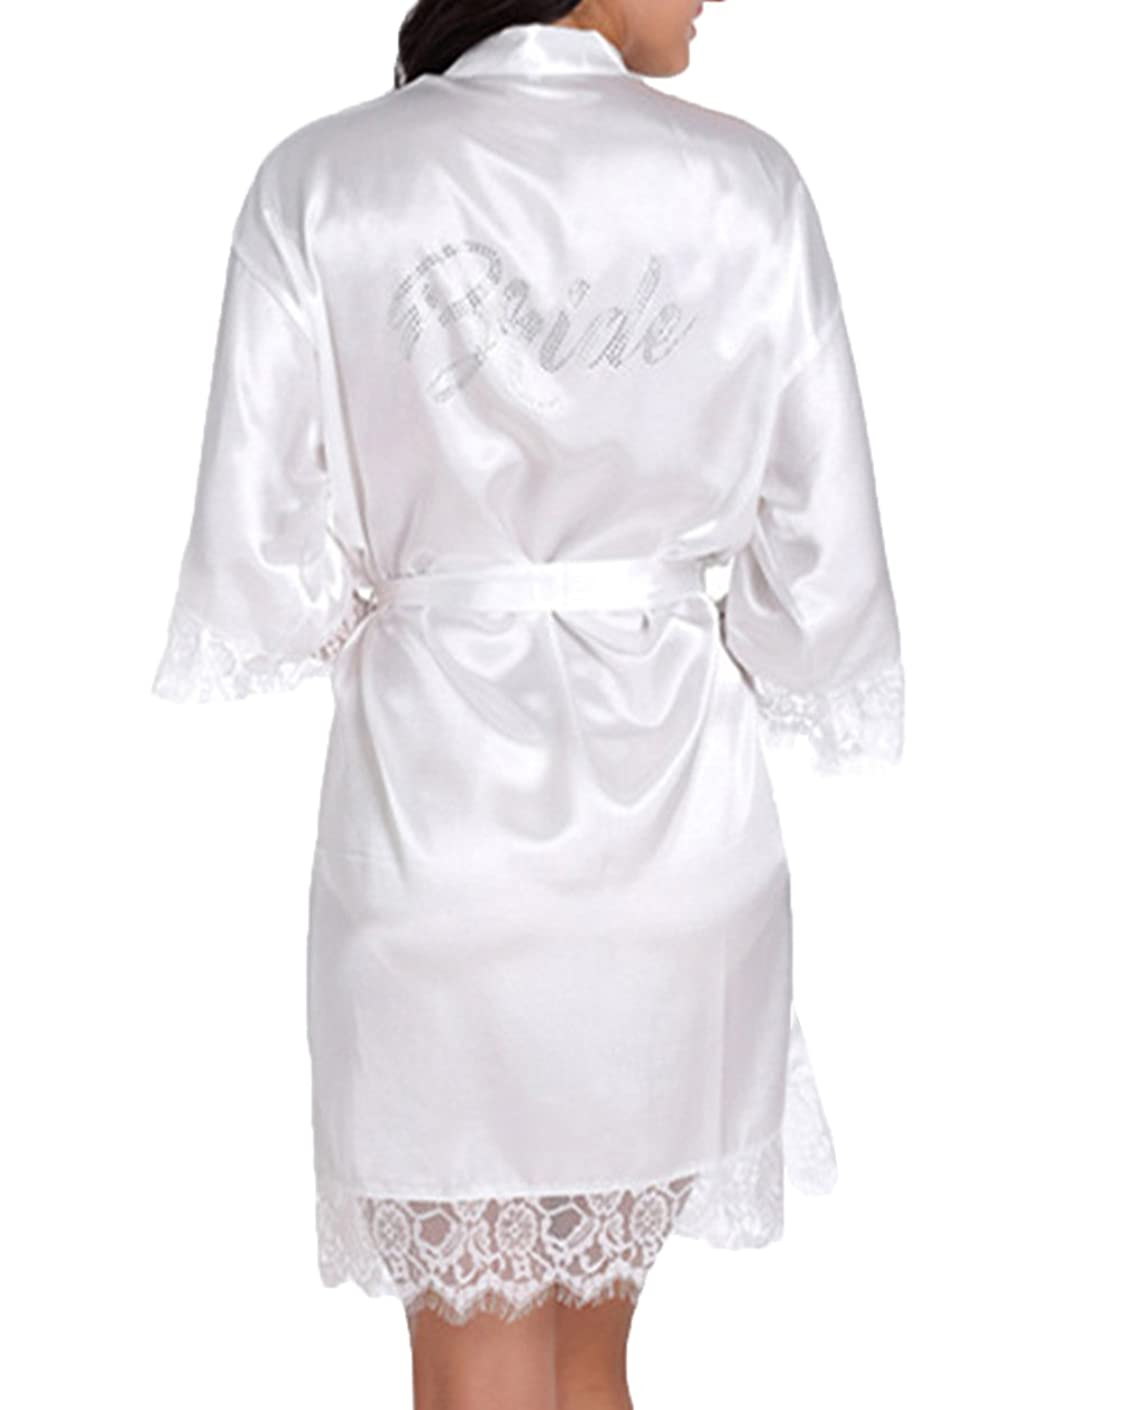 Bride Robes White Lace Bridal Party Robes Rhinestone Satin for Women